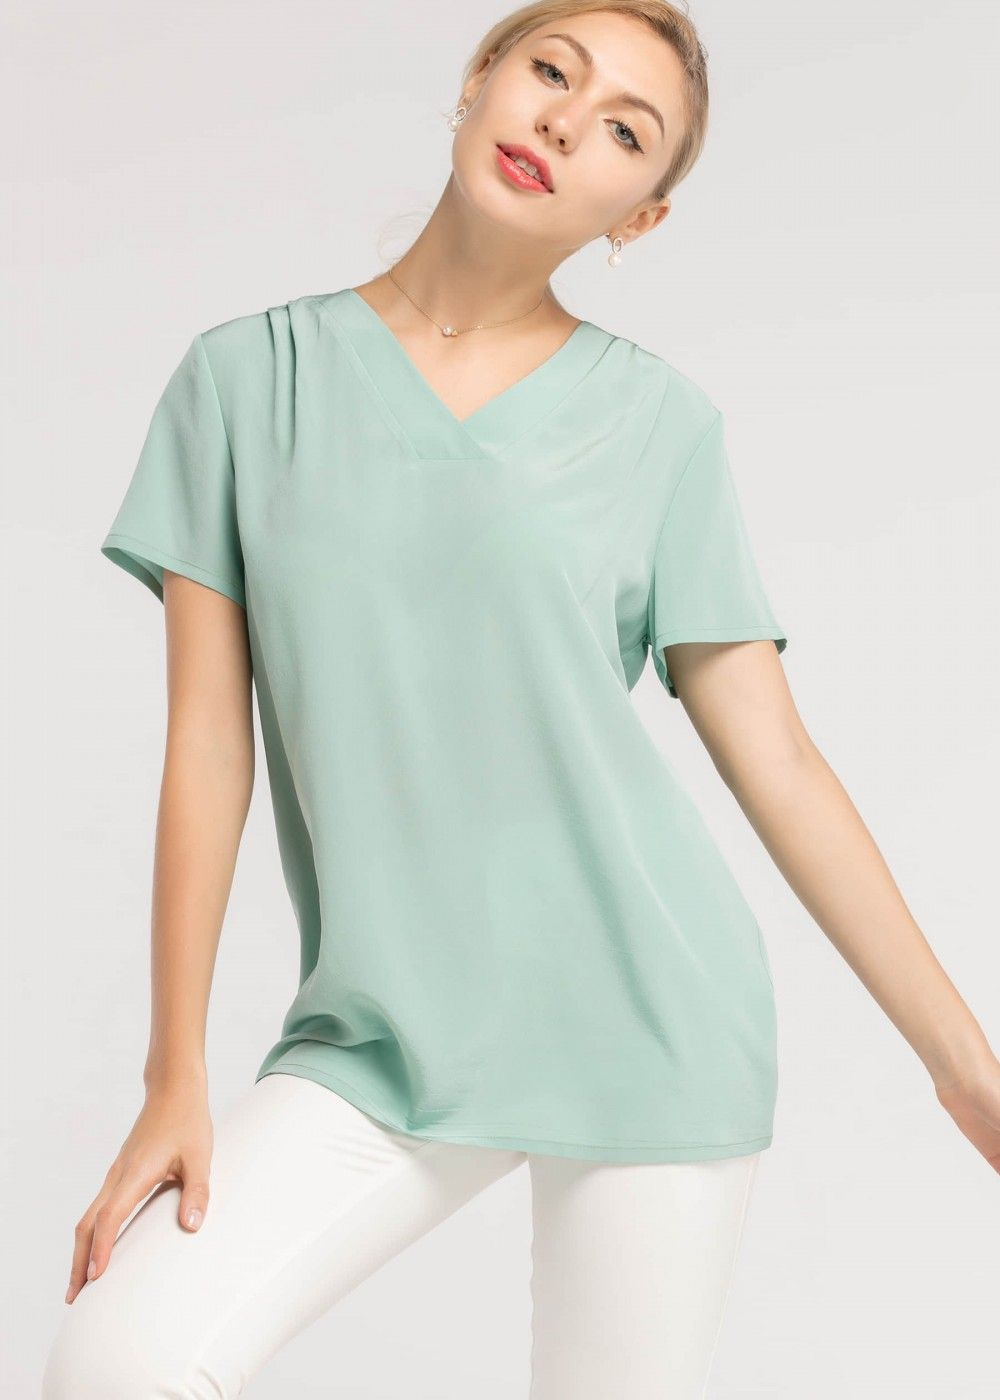 fd76cf63f5 Basic V Neckline Face Framing 16MM Silk T Shirt | Lilysilk ...